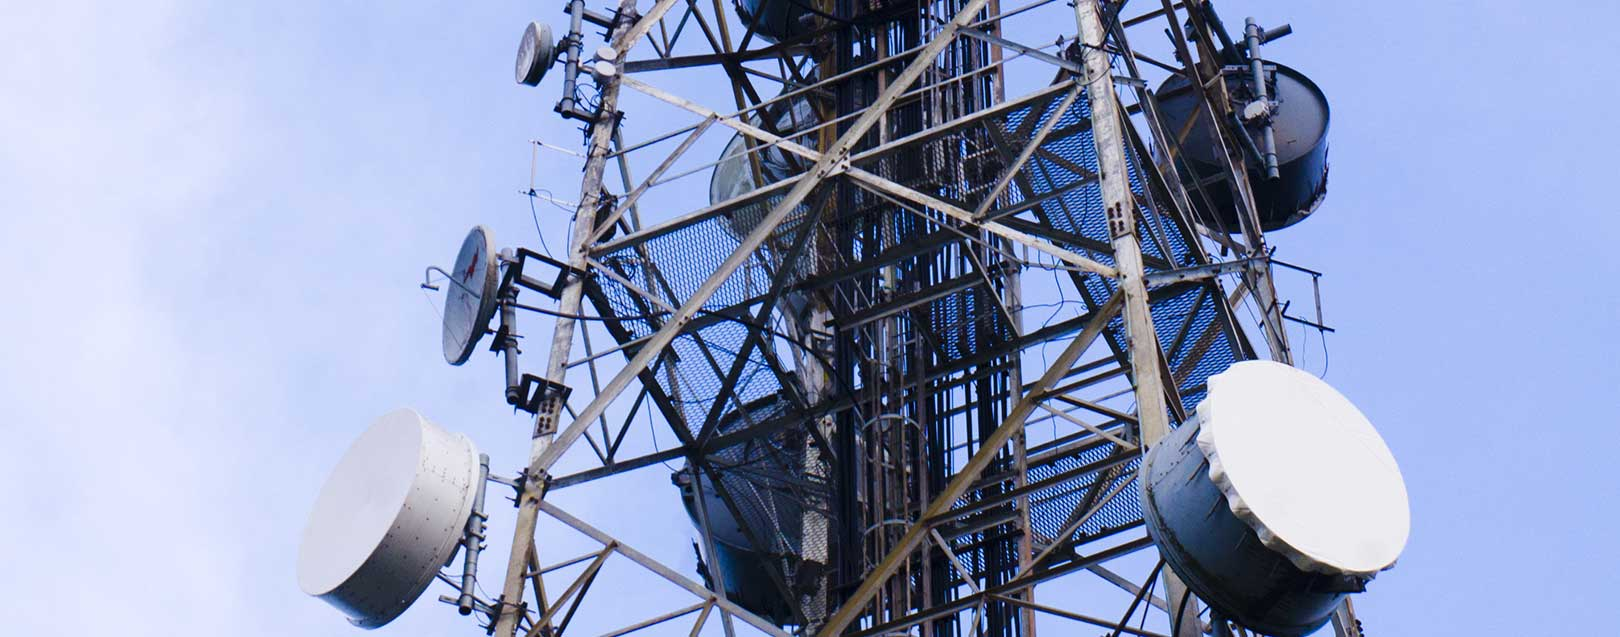 TRAI to resolve procedural bottlenecks in telecom business